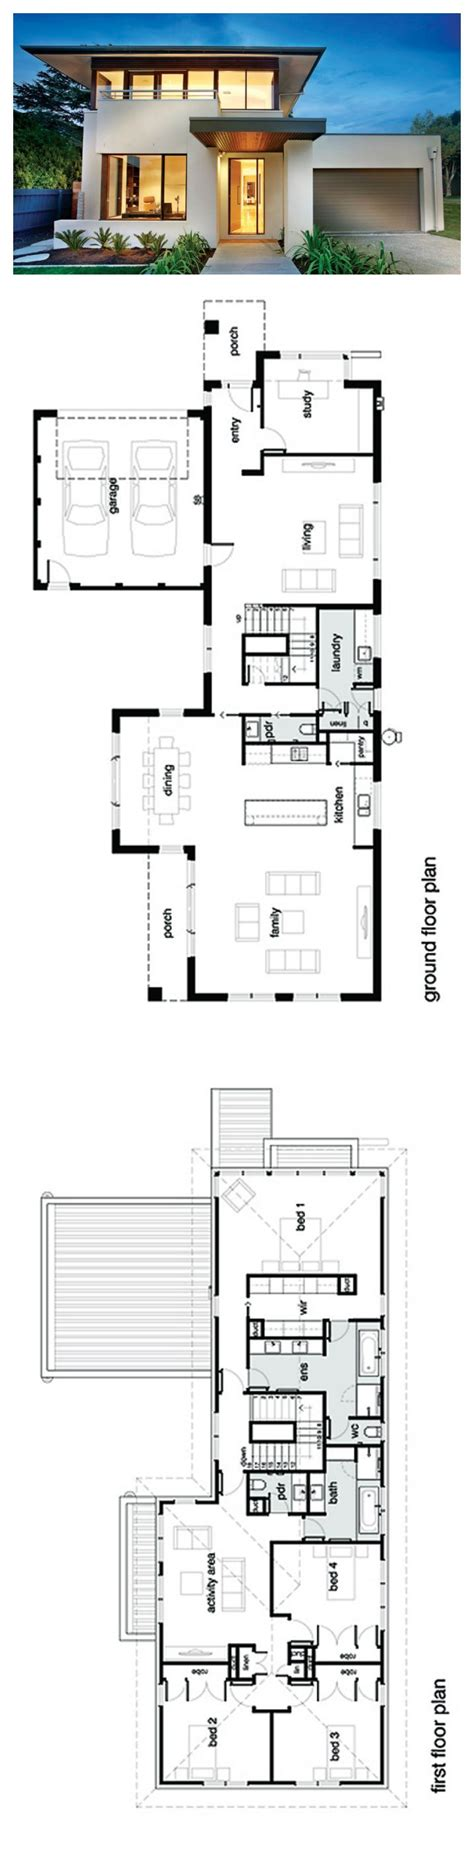 best modern house plans 18 house layout plans free ideas at popular design a floor